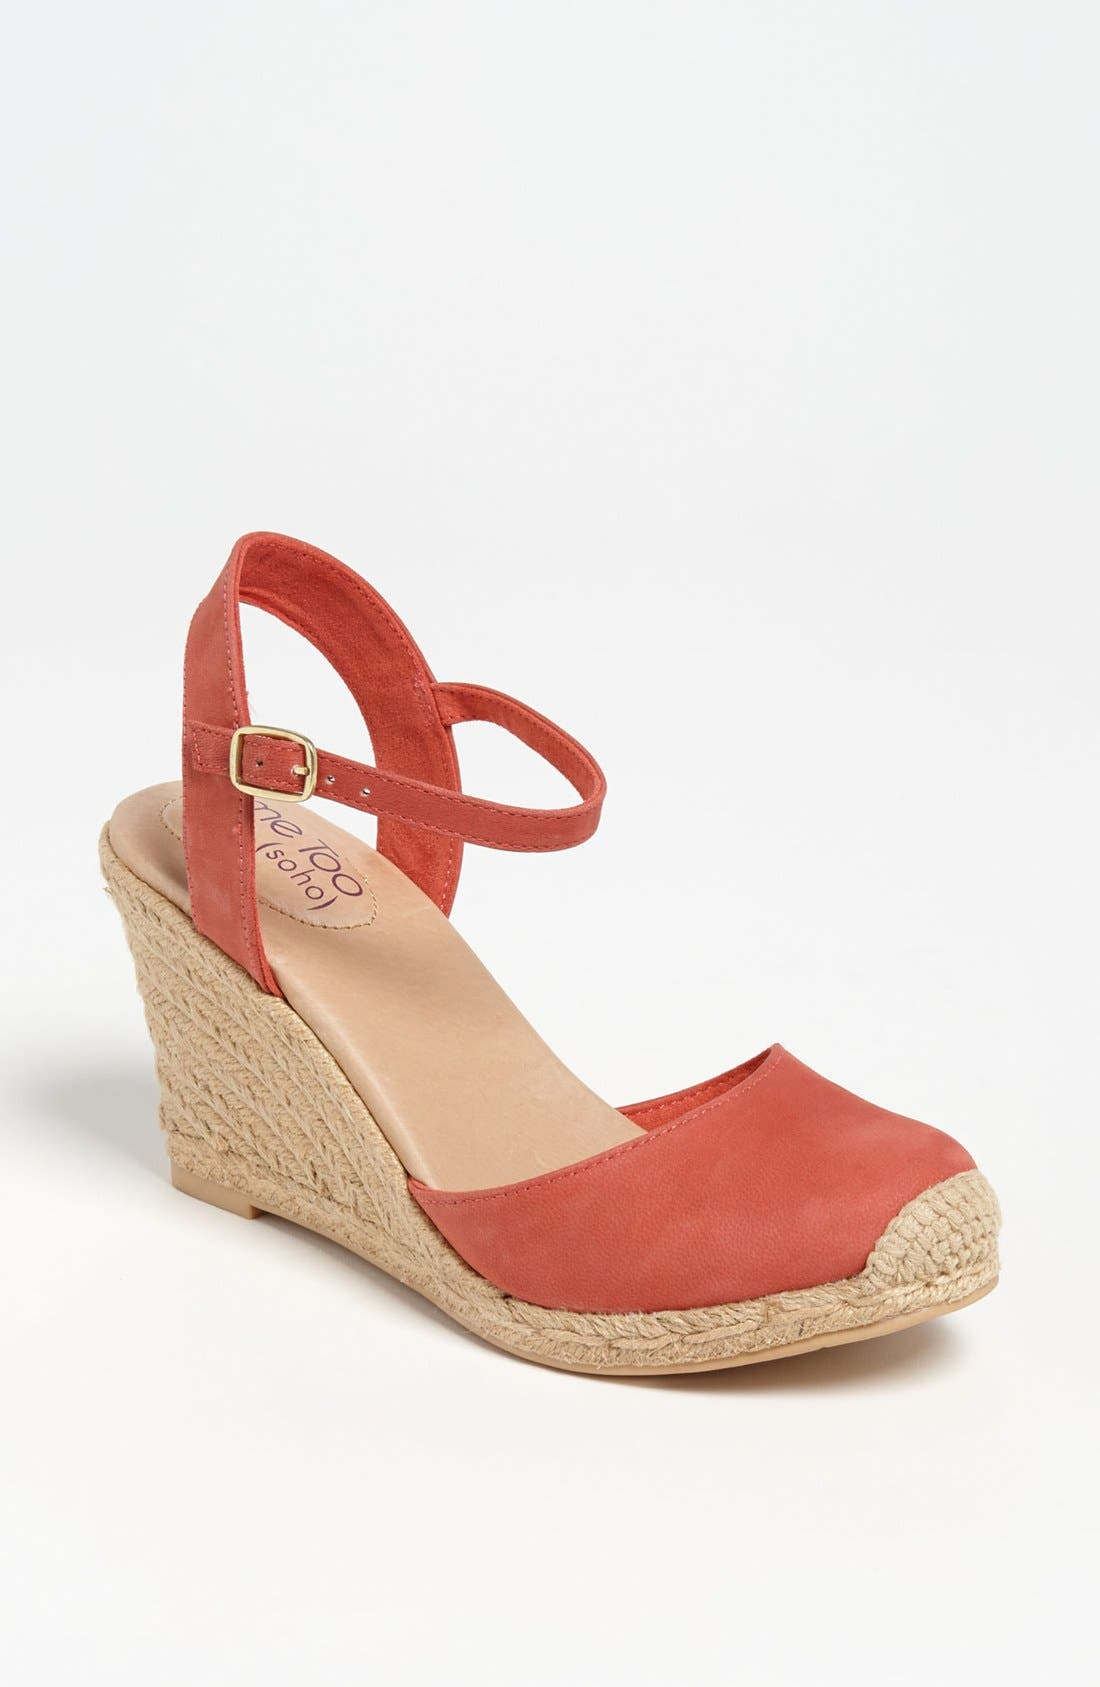 Main Image - Me Too 'Bethany' Wedge Sandal